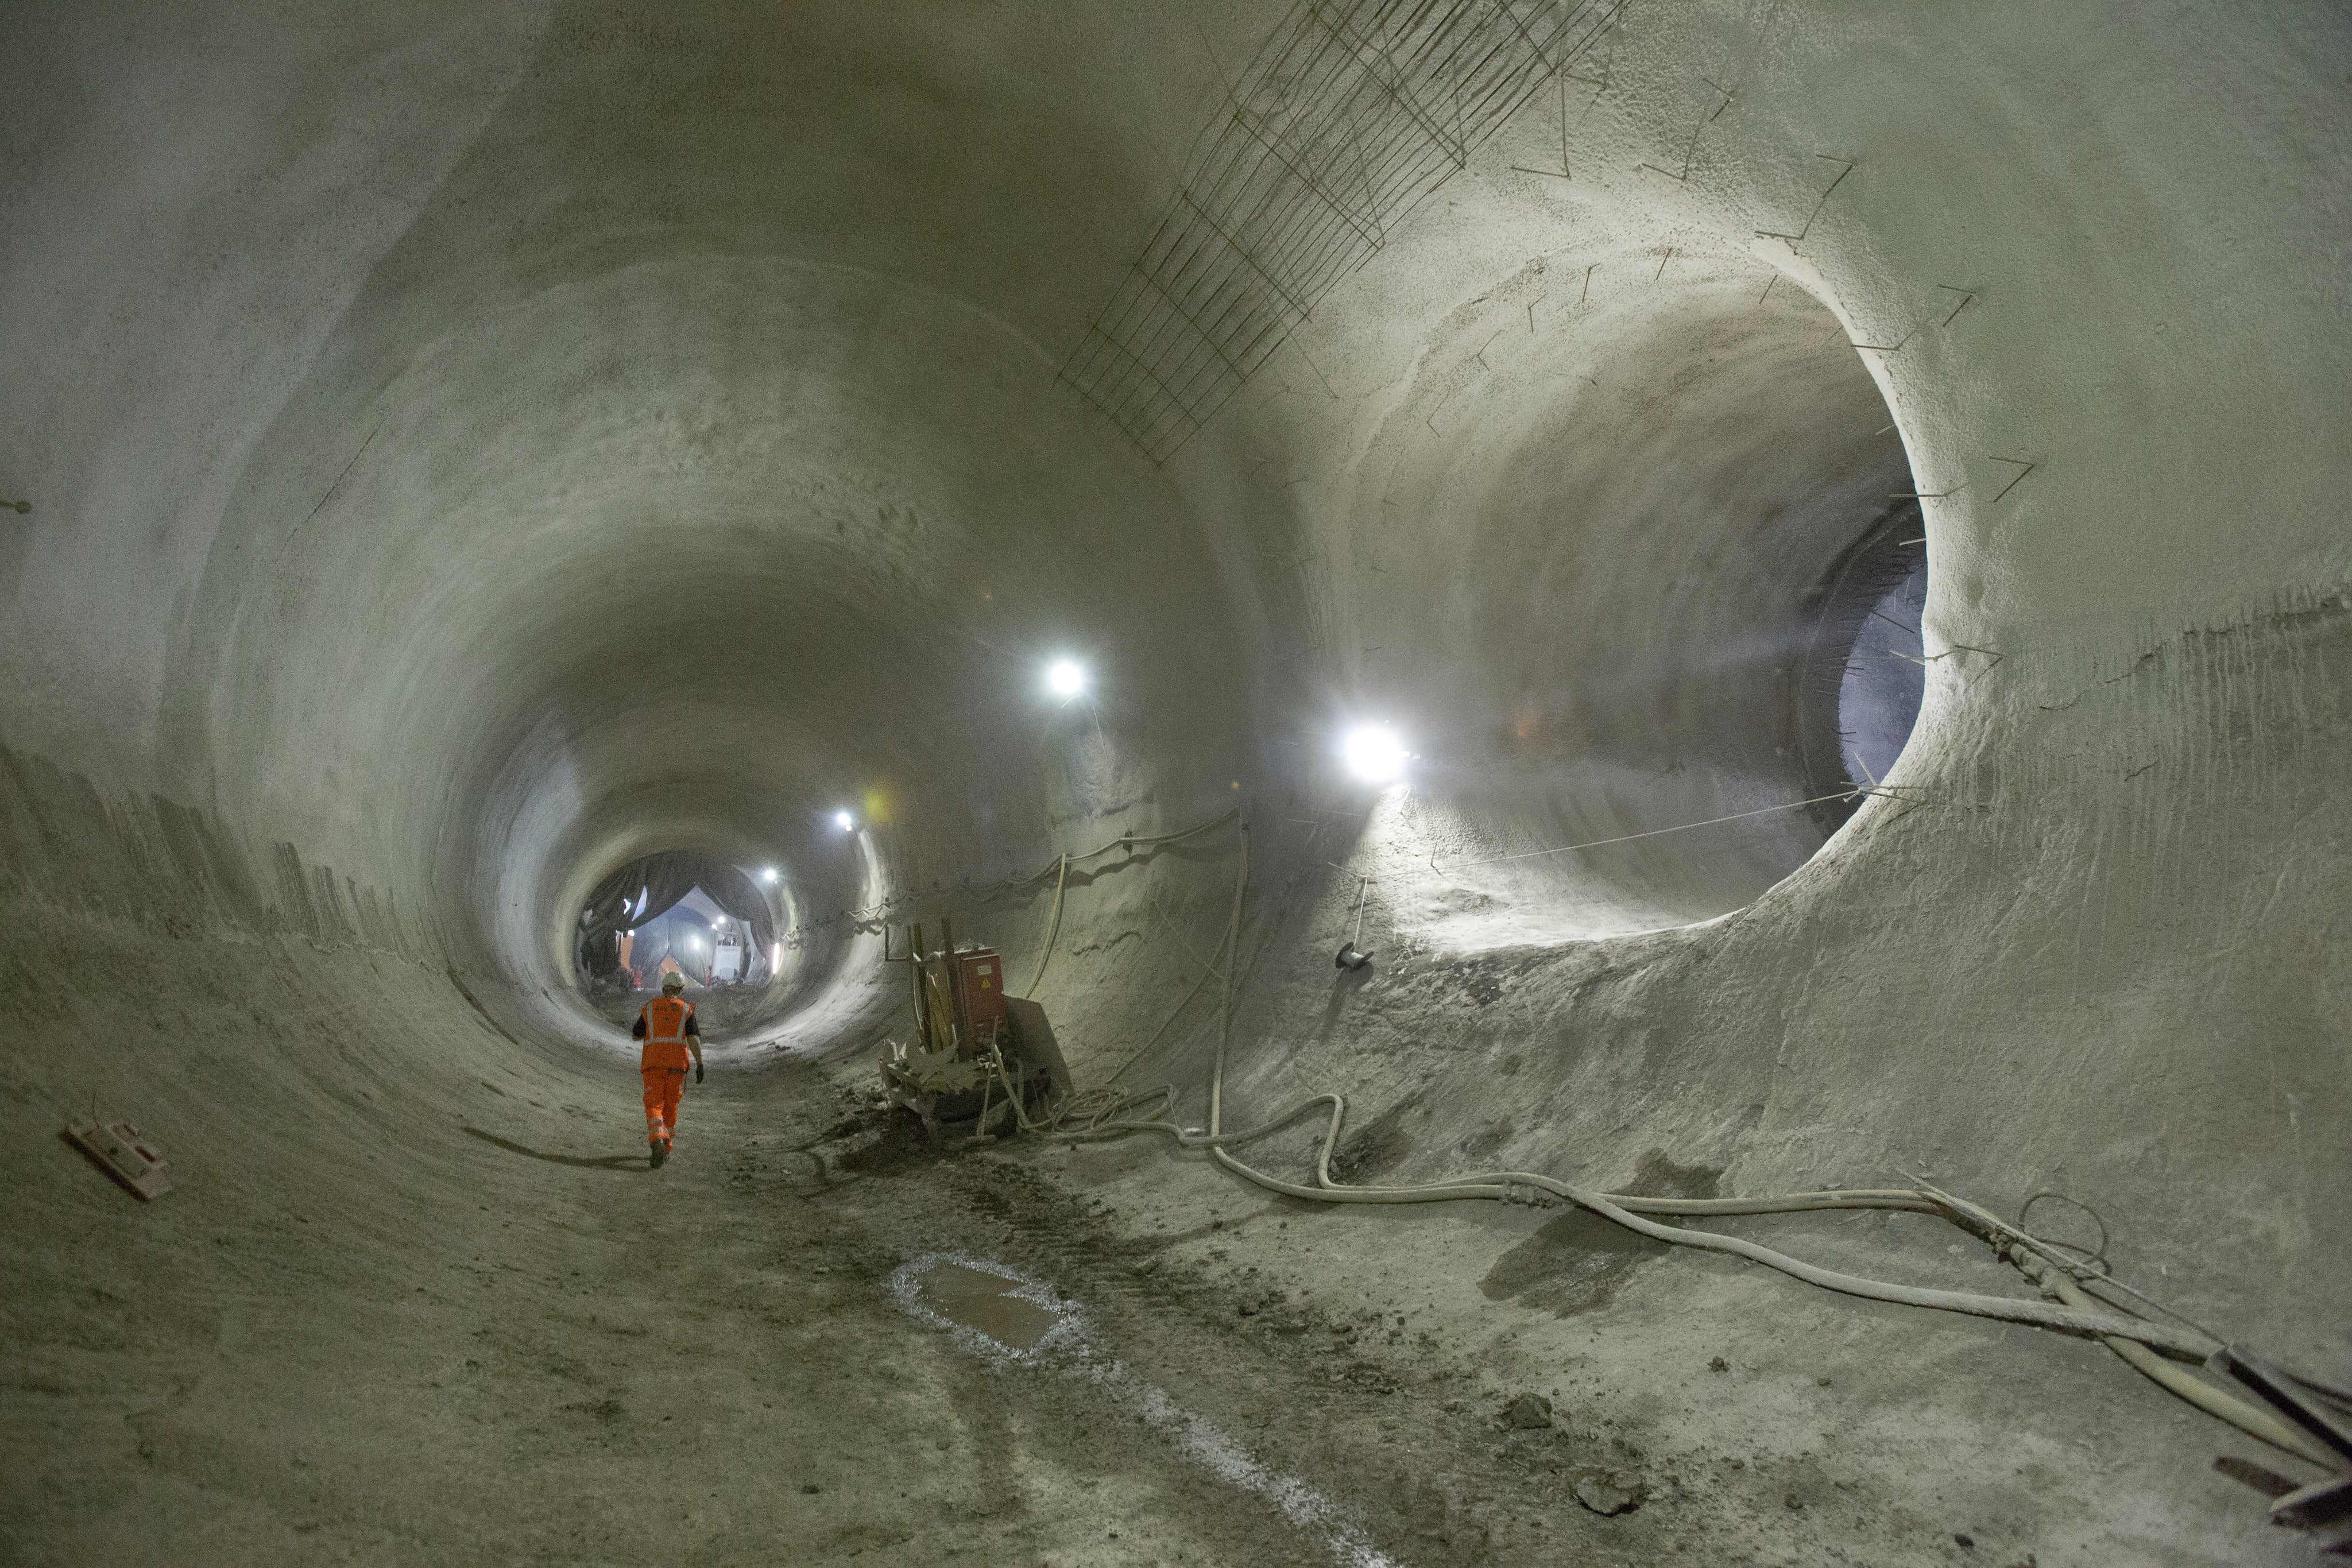 Inside the Vast Tunnels of Europe's Biggest Infrastructure Project